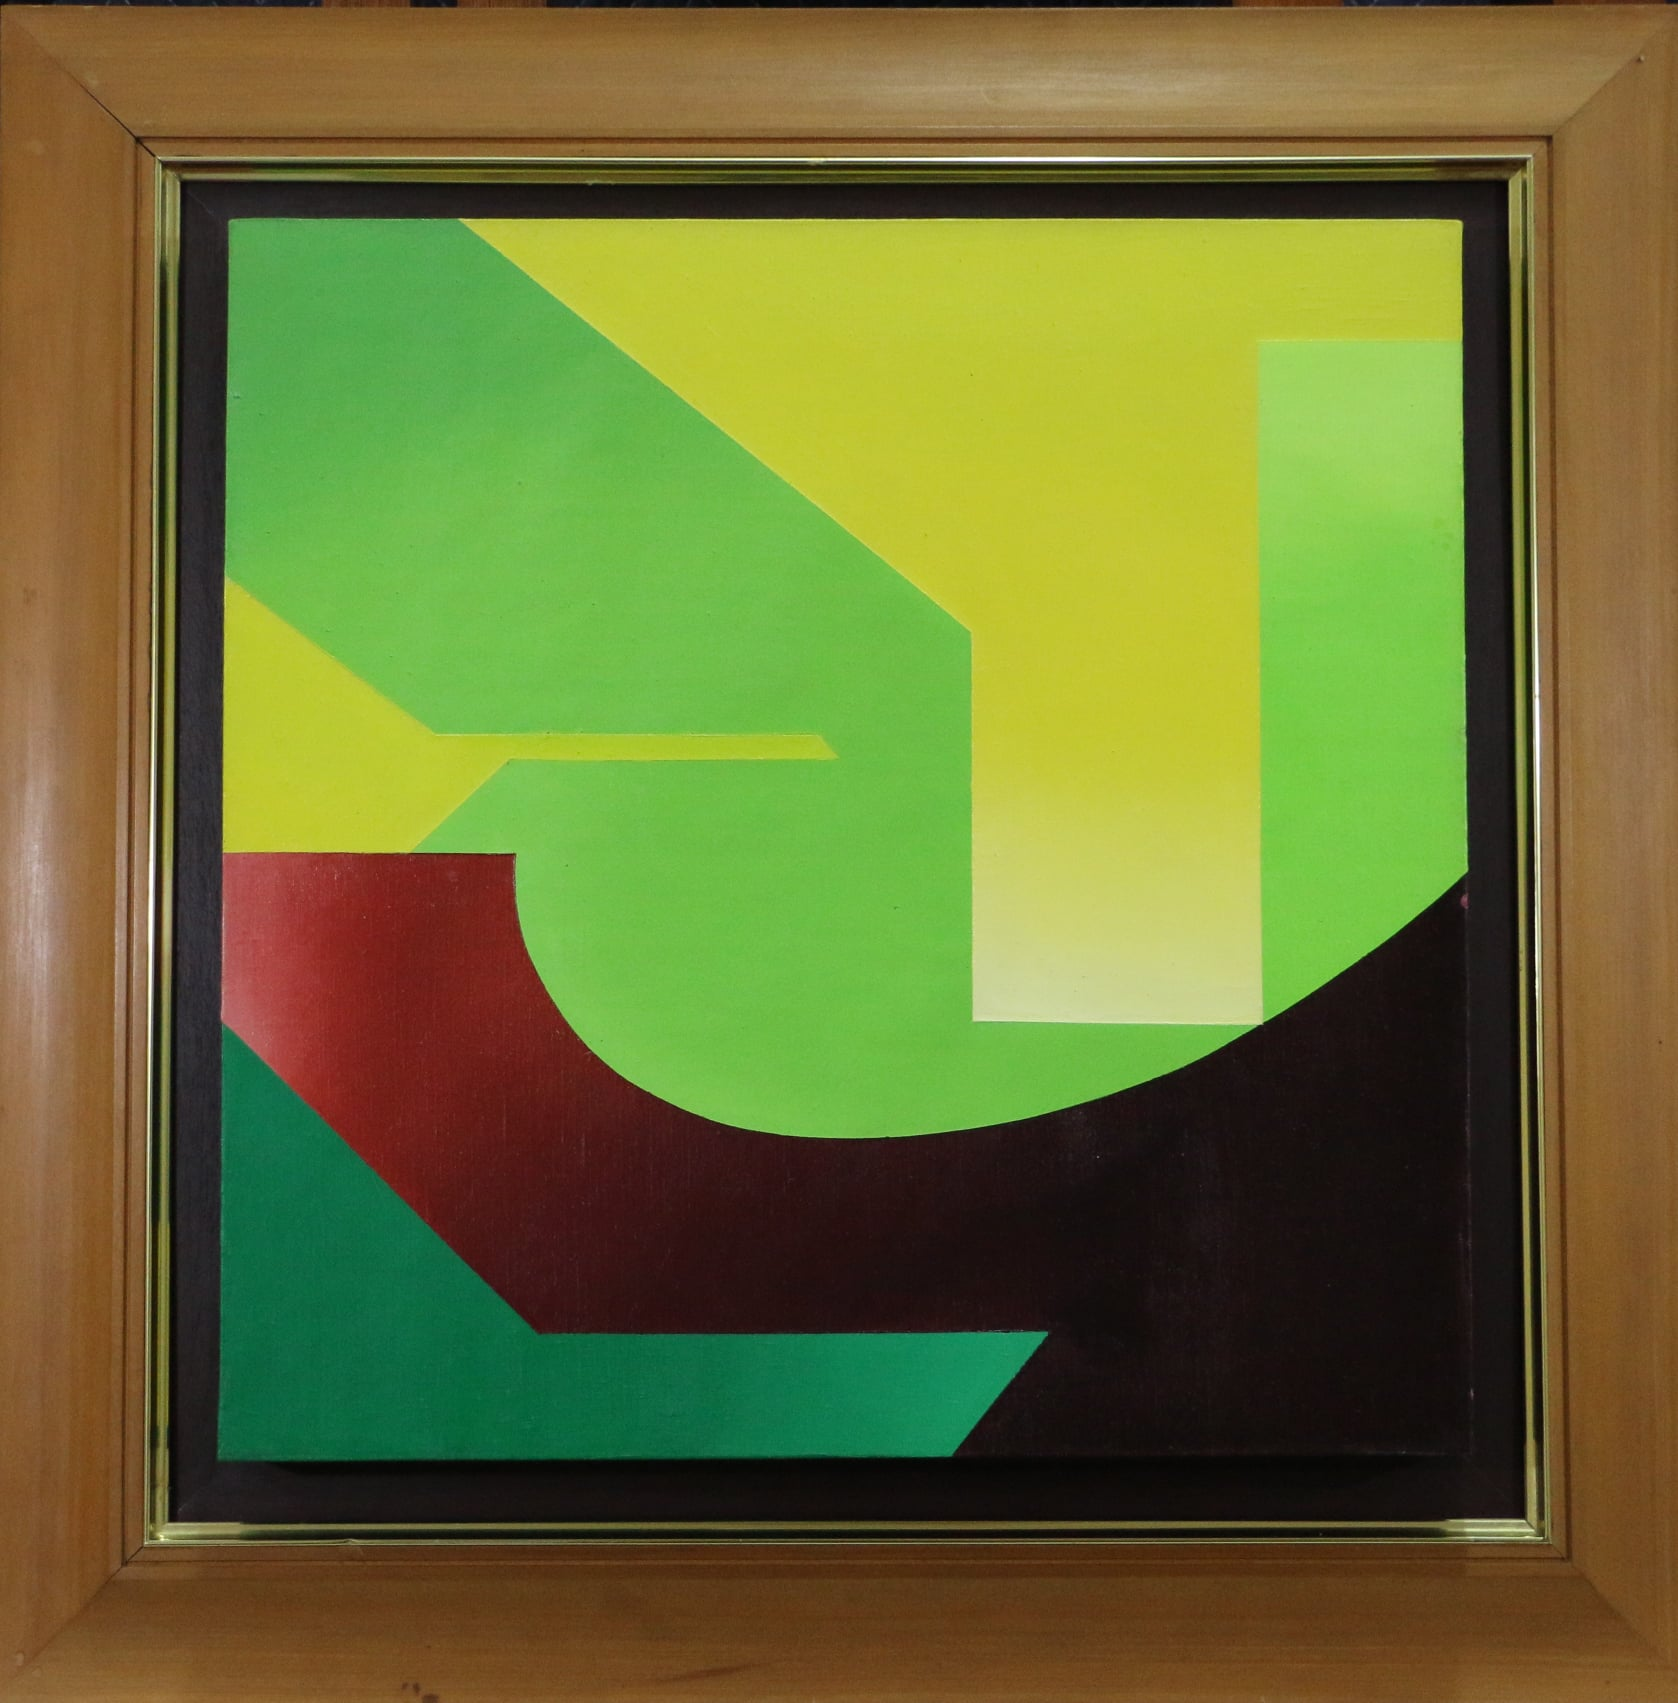 Painting Green, Yellow, Red, Purple (1974) by Lilian Hwang